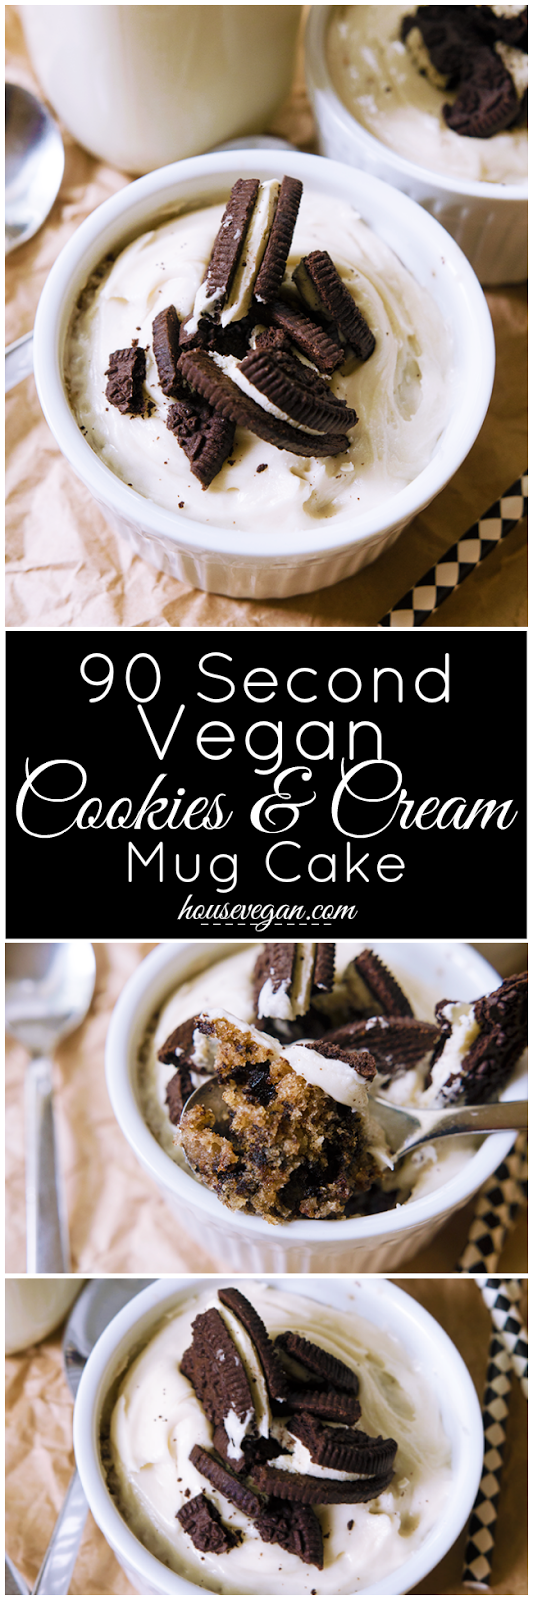 2 minute vegan mug cake, 5 minute vegan mug cake, vegan cakes in a mug, vegan chocolate cake mug microwave, vegan mug cake coconut oil, vegan mug cake easy, vegan mug cake microwave, vegan mug cake no milk, vegan mug cake sugar free, vegan mug cake vanilla, vegan mug cakes, vegan mug cakes chocolate, vegan mug cakes recipes, 5 minute vegan microwave cake, vegan chocolate microwave cake, vegan microwave baking, vegan microwave cake in a cup, vegan microwave cake in a mug, vegan microwave cake recipe, vegan microwave cakes, vegan microwave chocolate cake, vegan microwave chocolate cake in a mug, vegan microwave chocolate cake mug, vegan microwave cup cake, vegan microwave dessert, vegan microwave dessert recipes, vegan microwave mug cake recipe, vegan microwave mug cakes, vegan microwave vanilla cake, vegan microwave vanilla cake in a mug, vegan vanilla microwave cake, vegan oreo mug cake, vegan cookies and cream mug cake, cookies and cream cake in a mug, cookies and cream mug cake, cookies and cream mug cake recipe, cookies n cream mug cake, how to make a cookies and cream mug cake, oreo cookies and cream mug cake